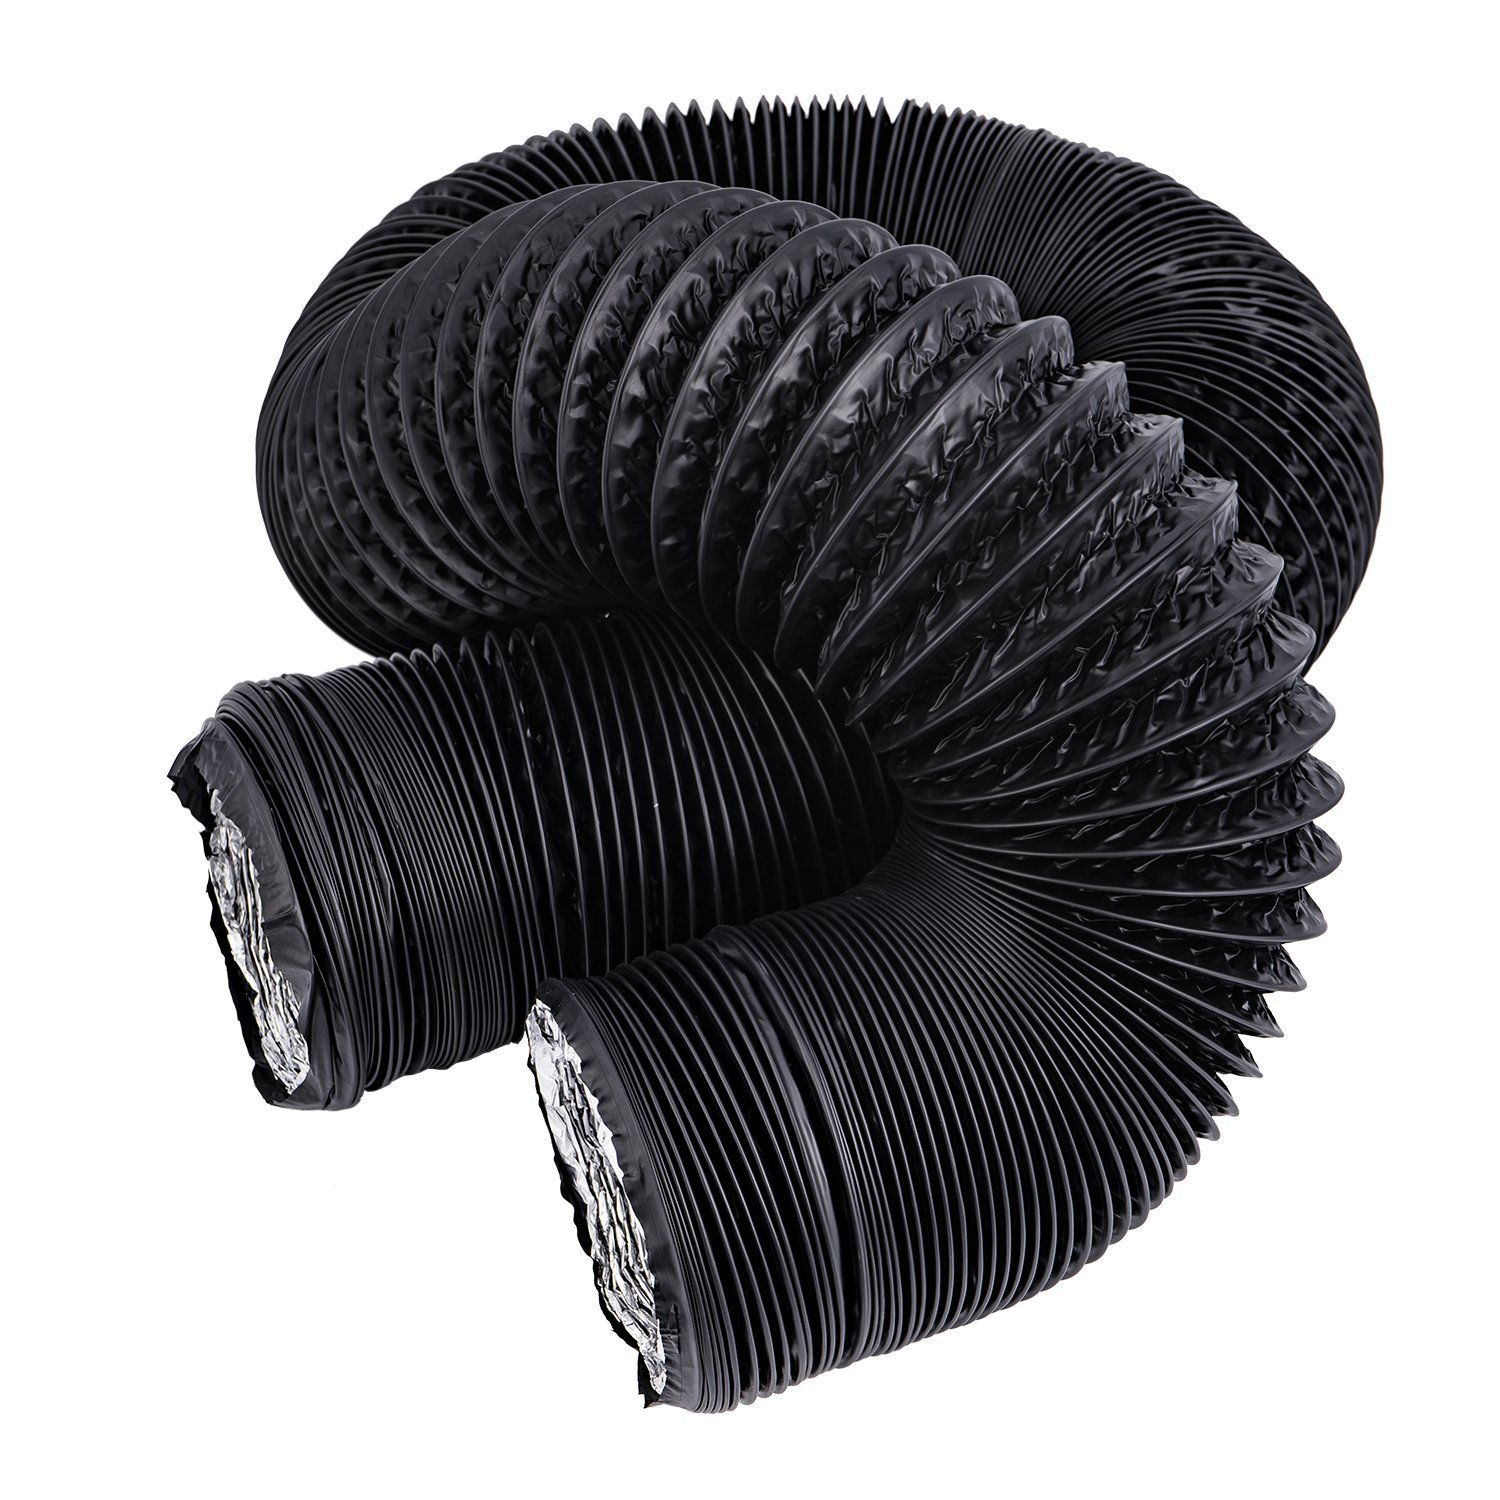 Hon&Guan 8 inch Air Duct - 32 FT Long, Black Flexible Ducting HVAC Ventilation Air Hose for Grow Tents, Dryer Rooms,Kitchen